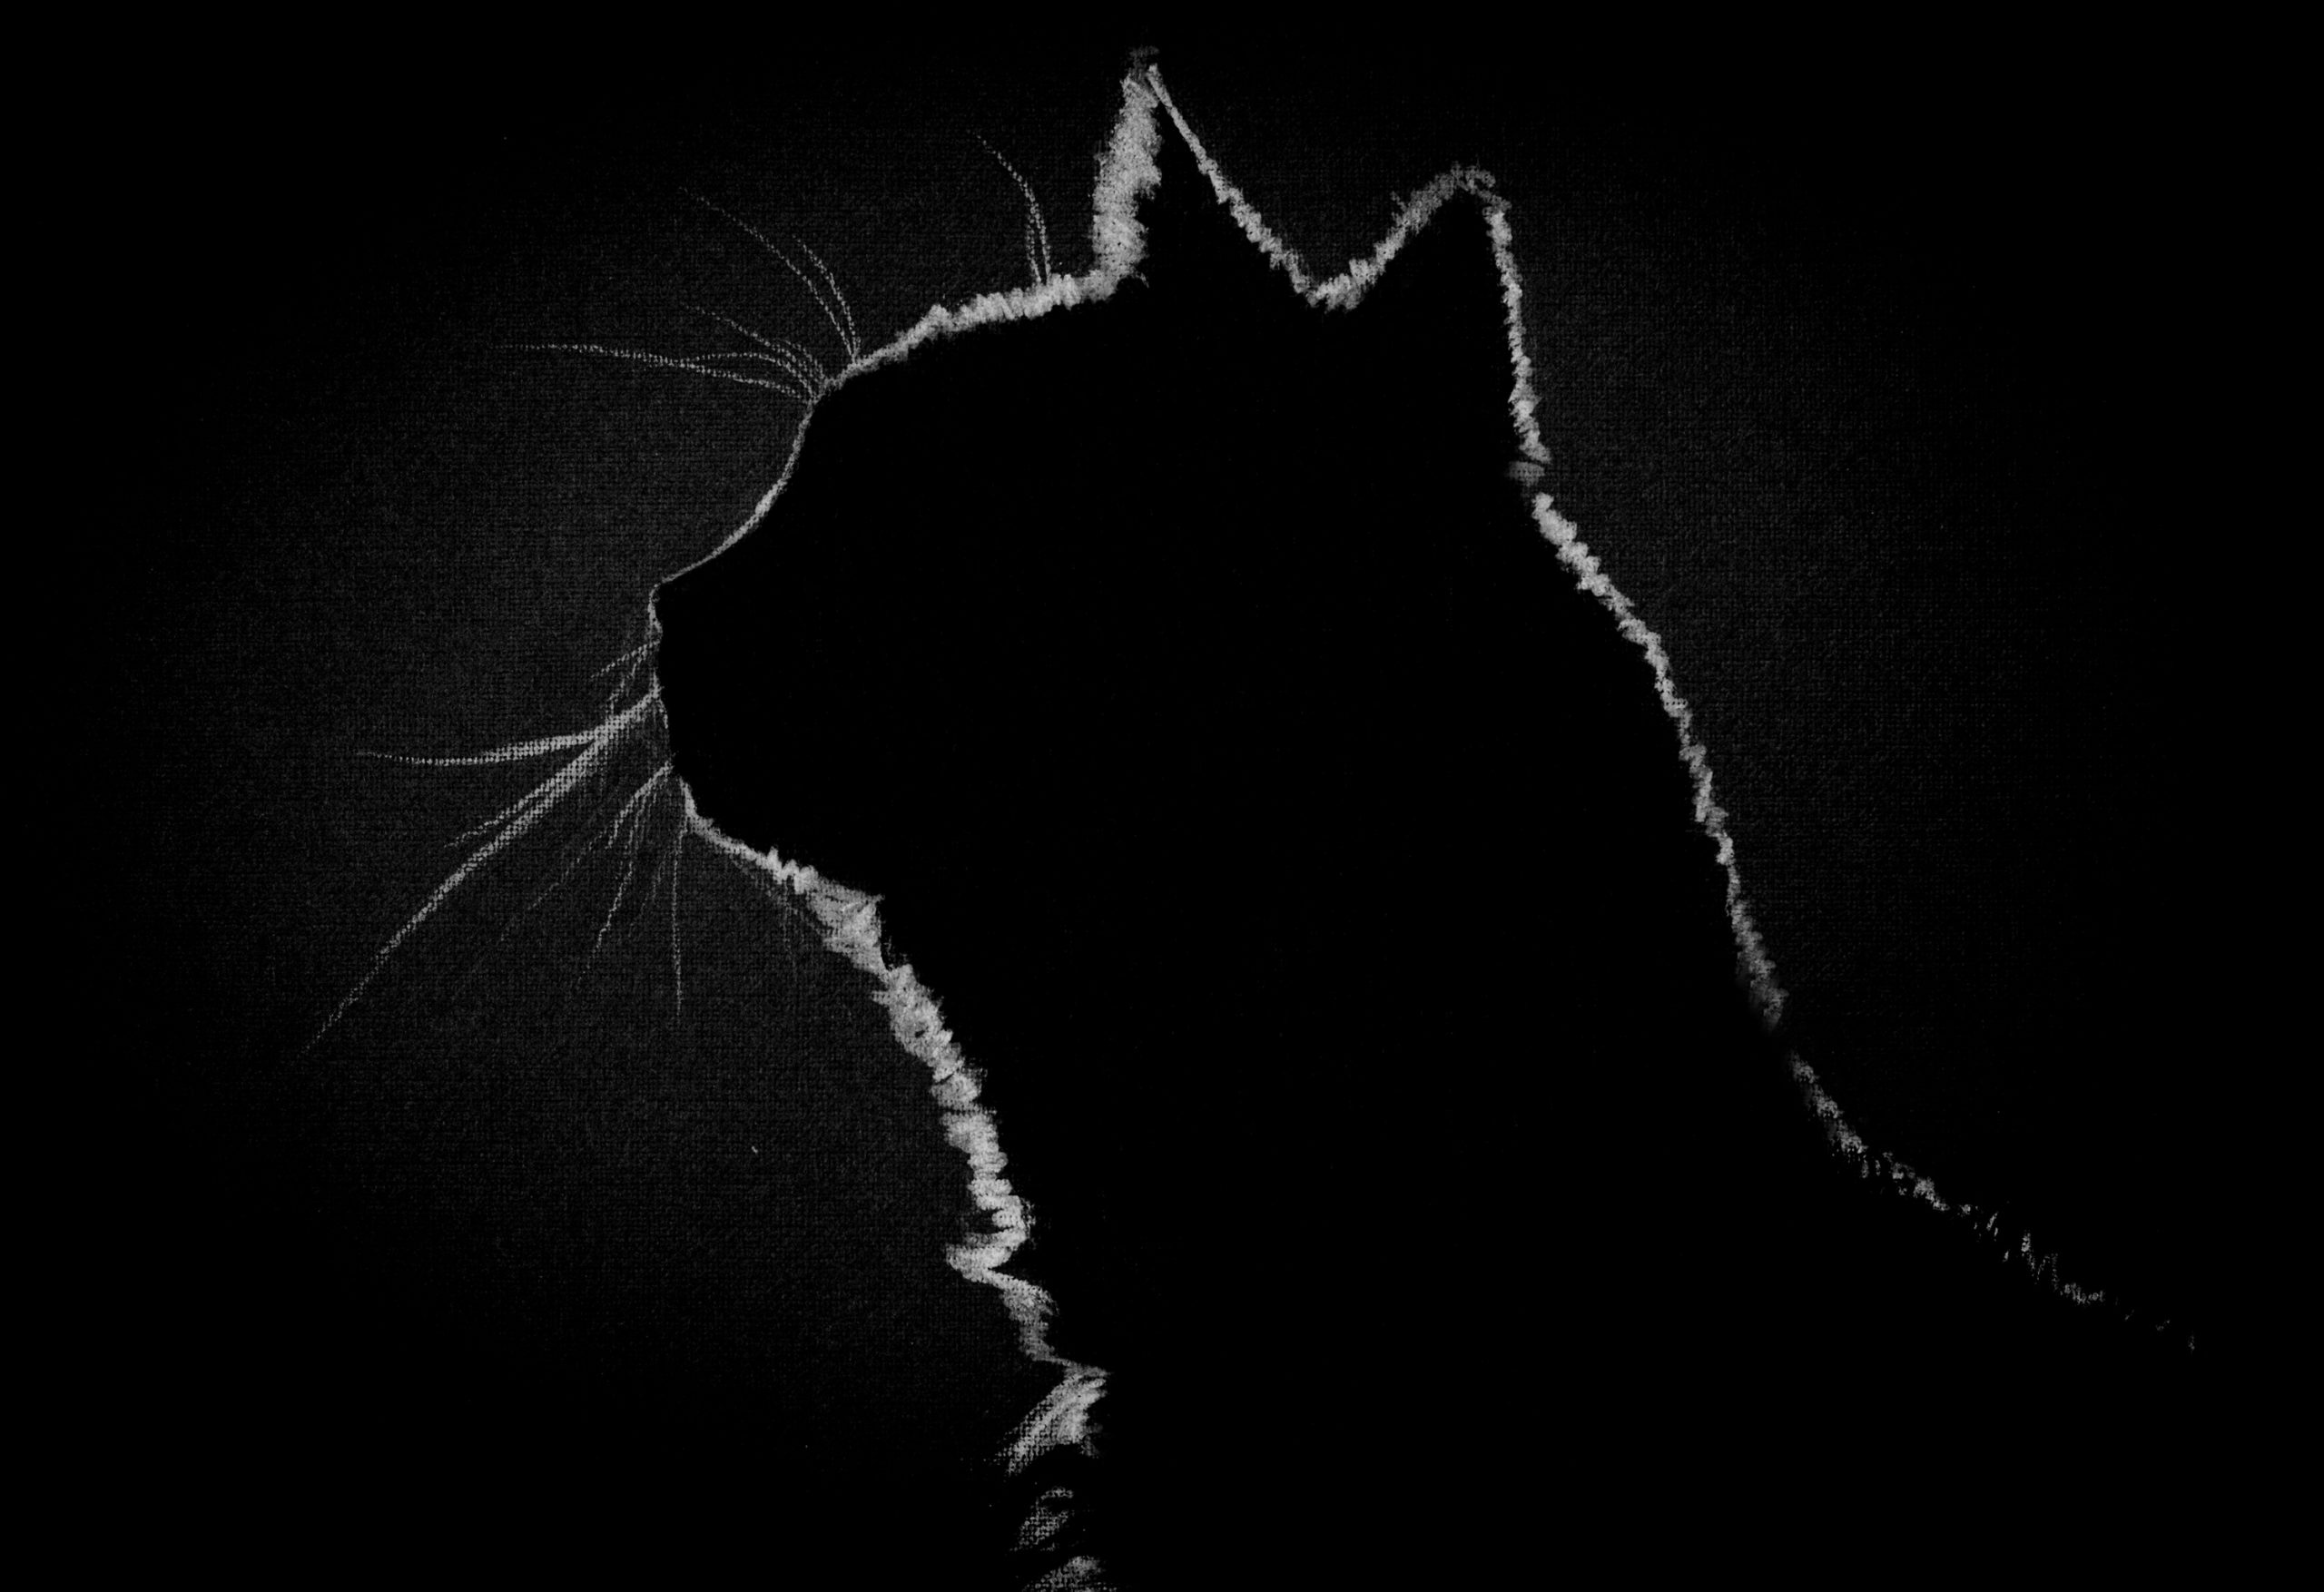 The Master and Margarita has inspired this feature image, displaying the profile of a cat in the dark